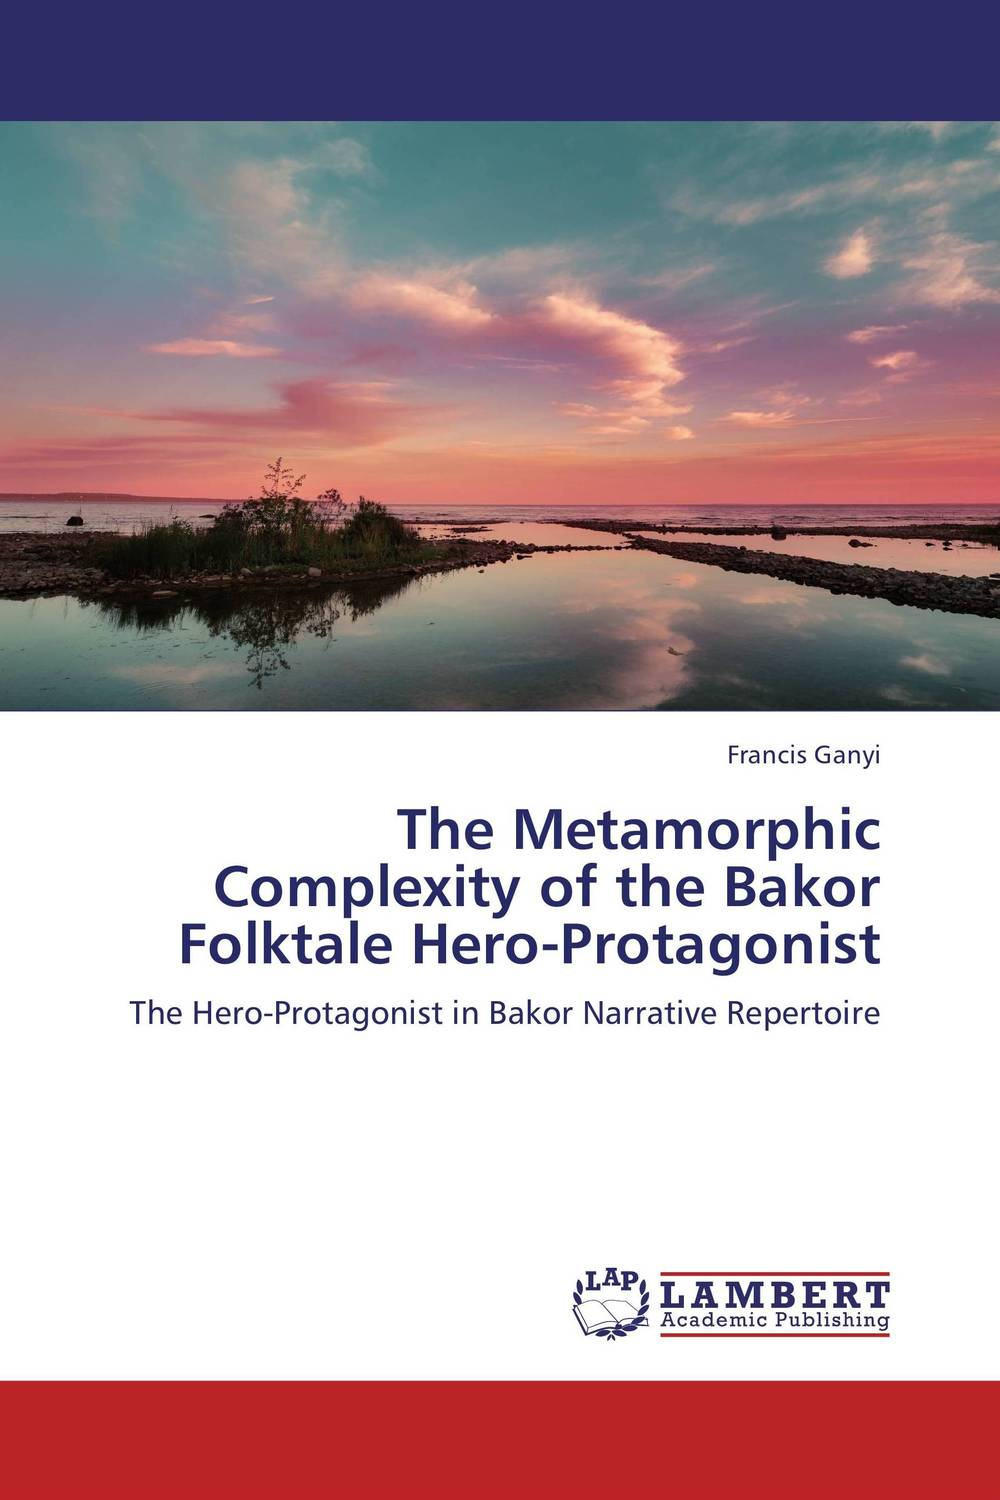 The Metamorphic Complexity of the Bakor Folktale Hero-Protagonist heroism